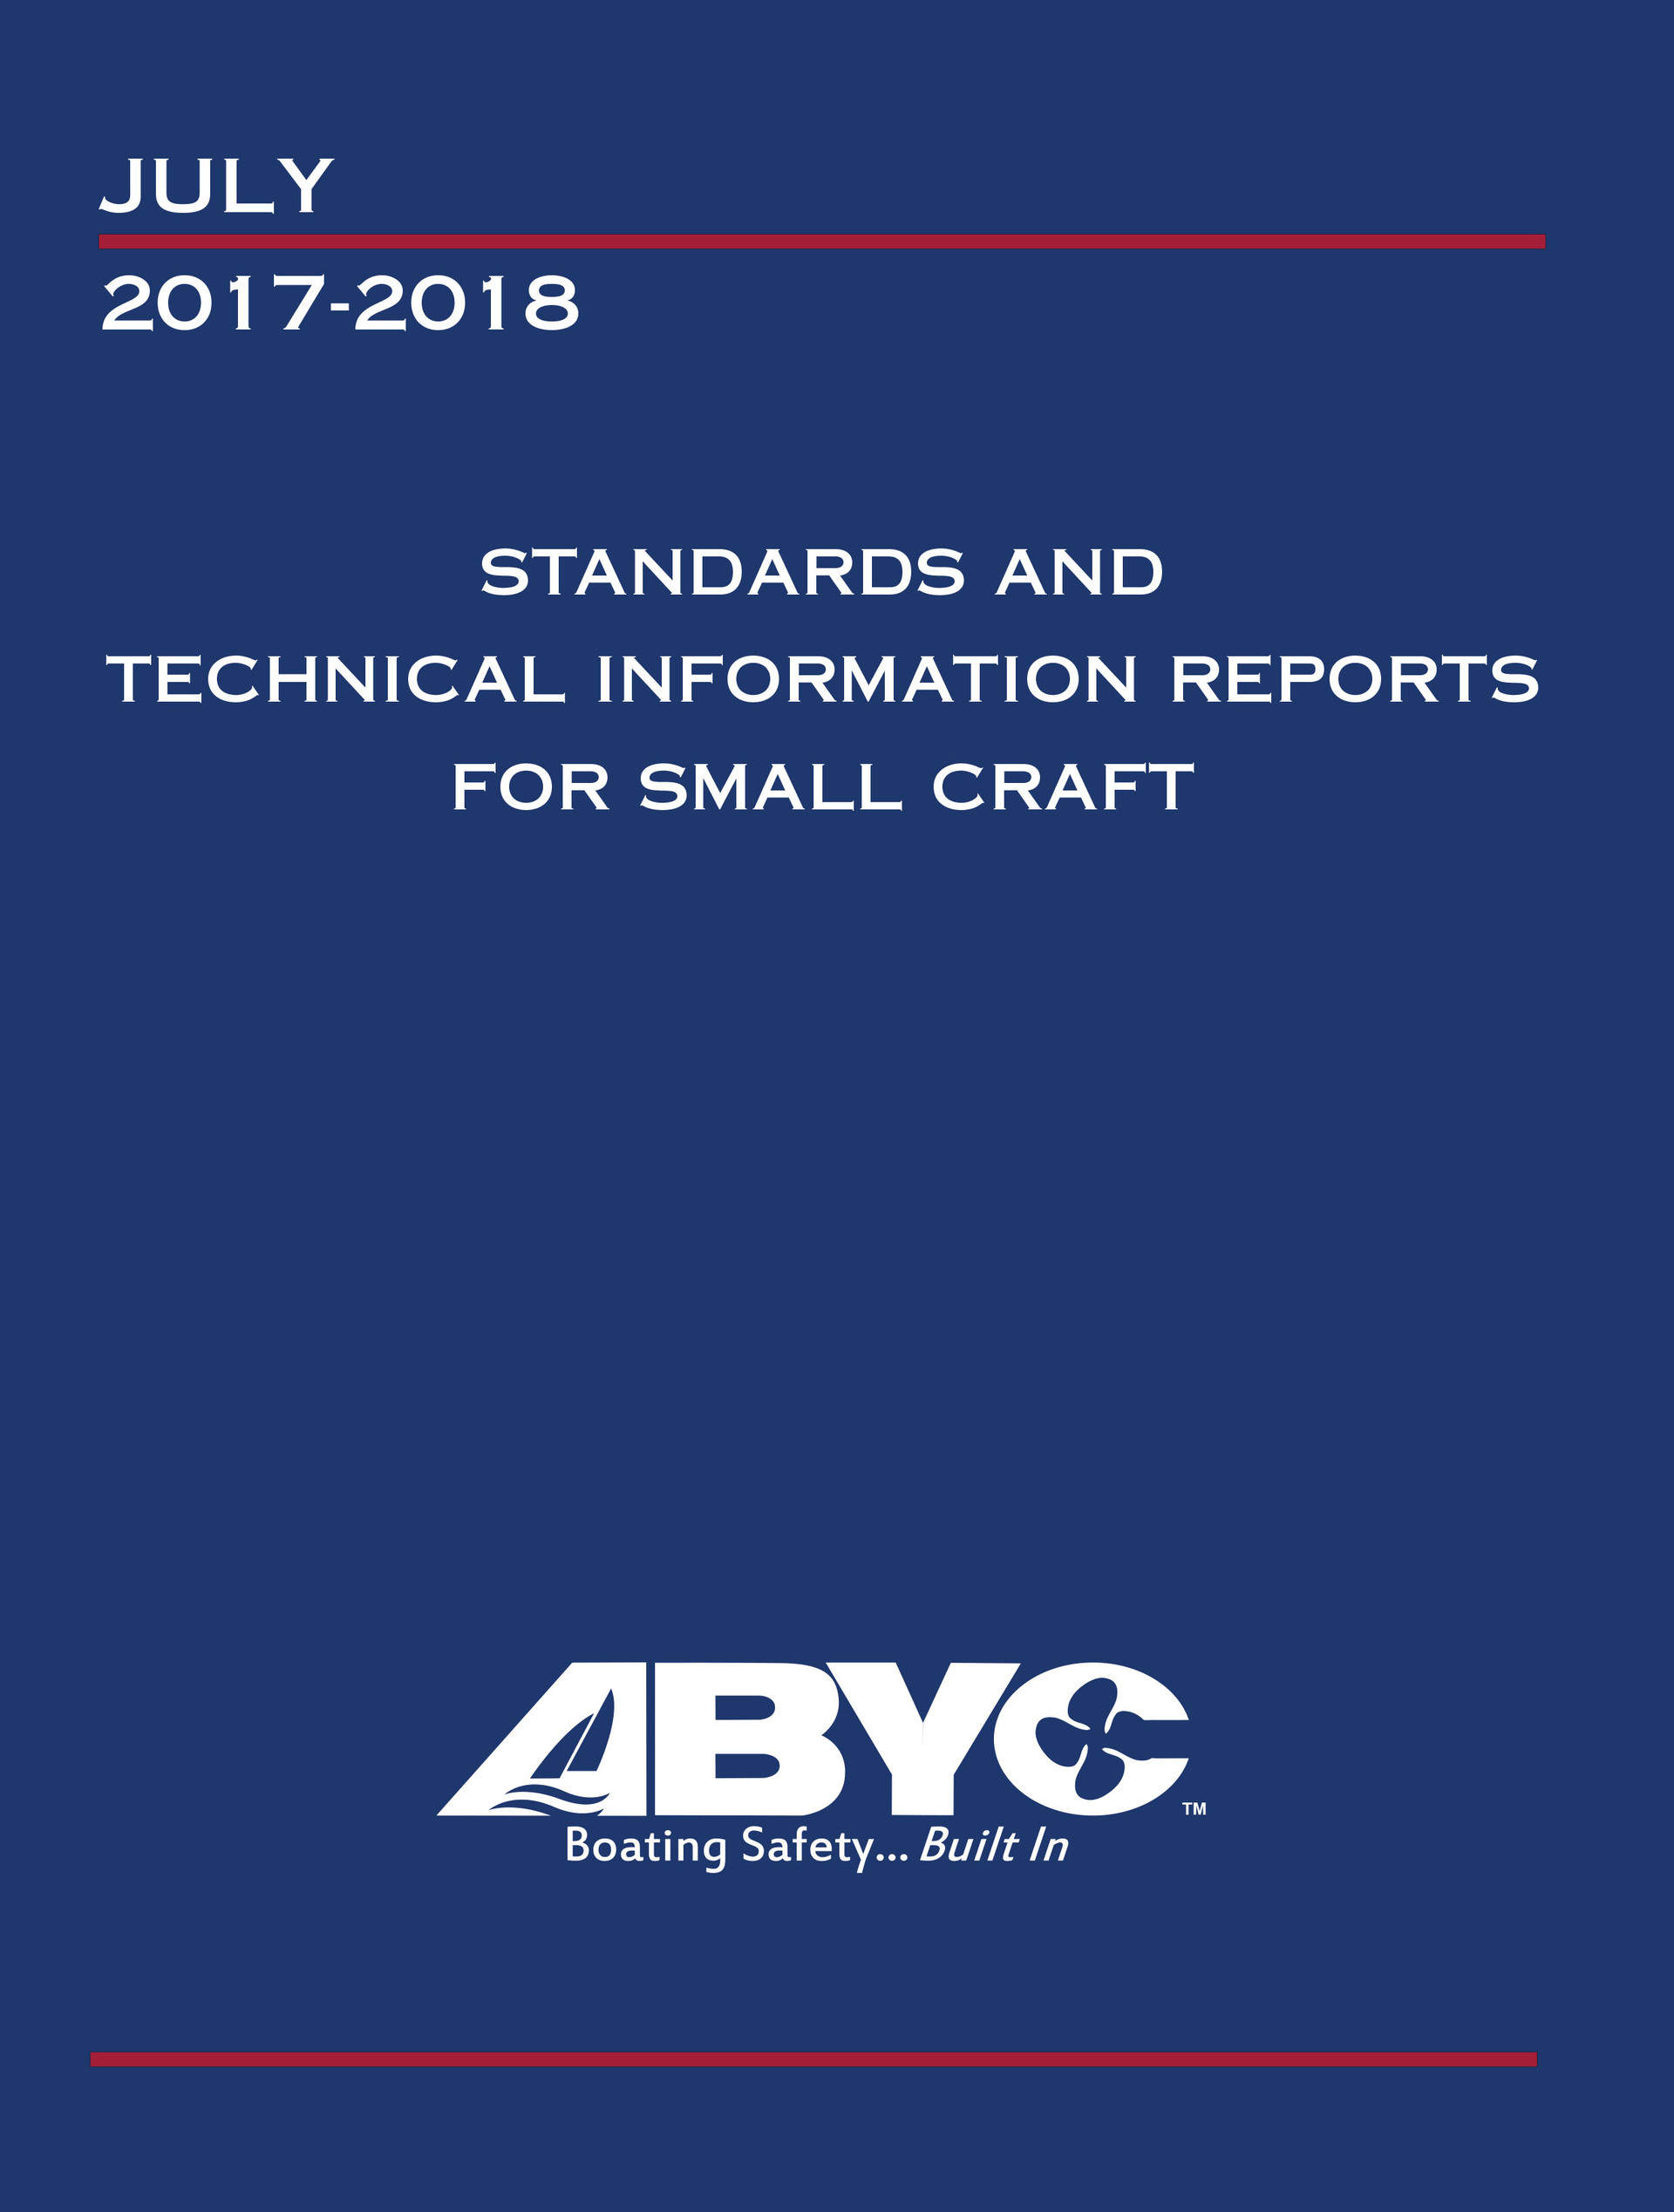 Abyc wiring standards books diy enthusiasts wiring diagrams dlhardware rh dnl com abyc color code marine wiring keyboard keysfo Image collections